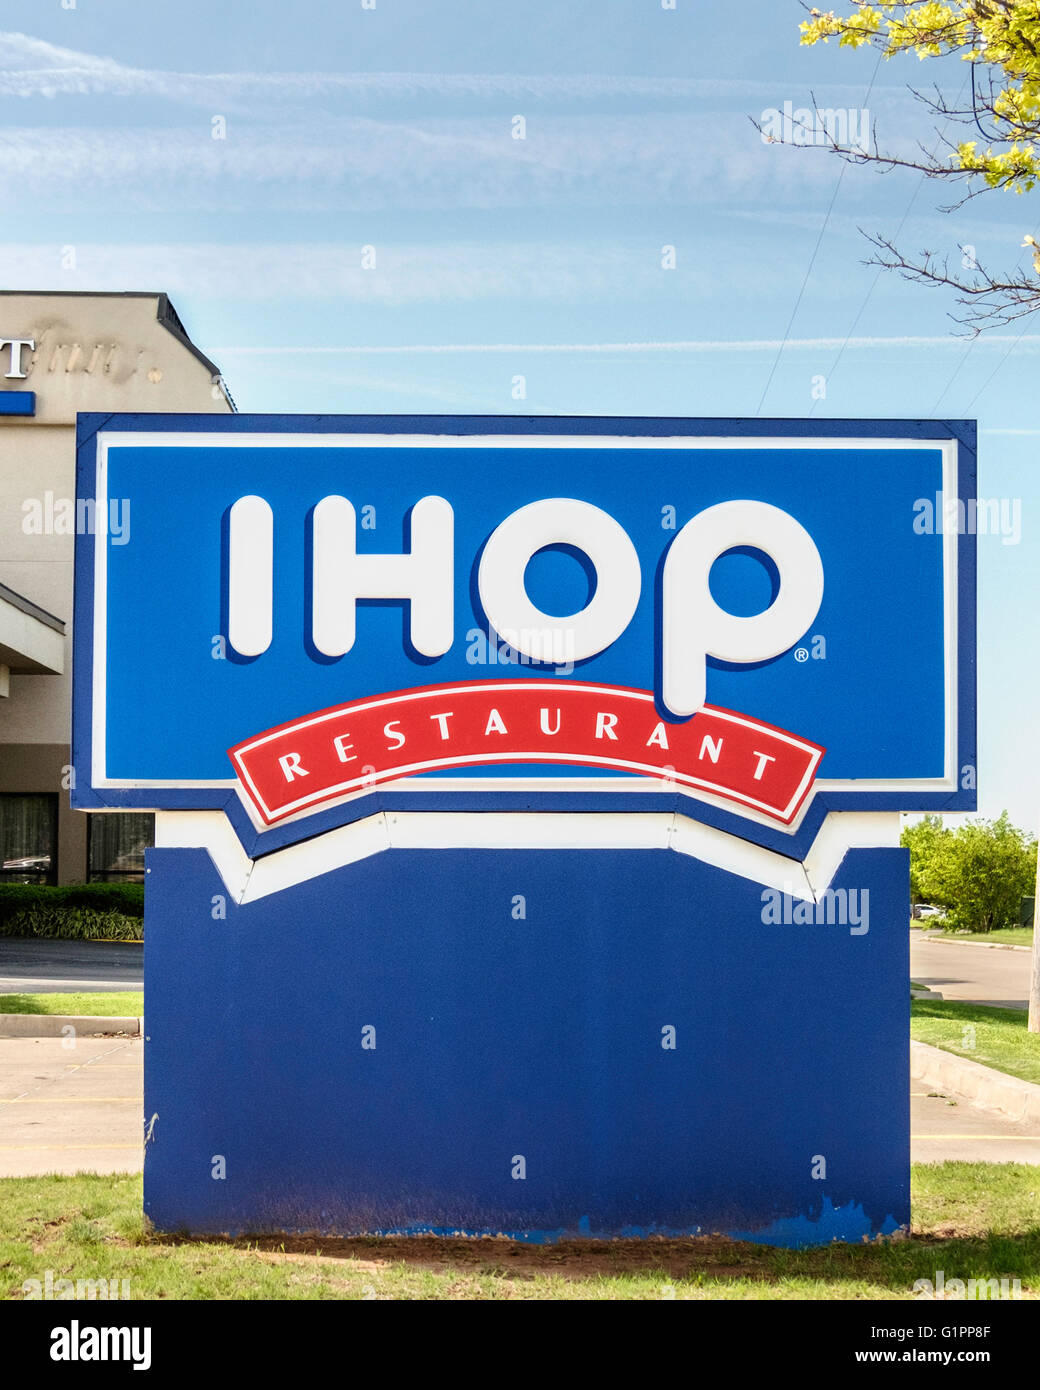 A Monument Sign Advertising Ihop Restaurant In Oklahoma City Stock ...